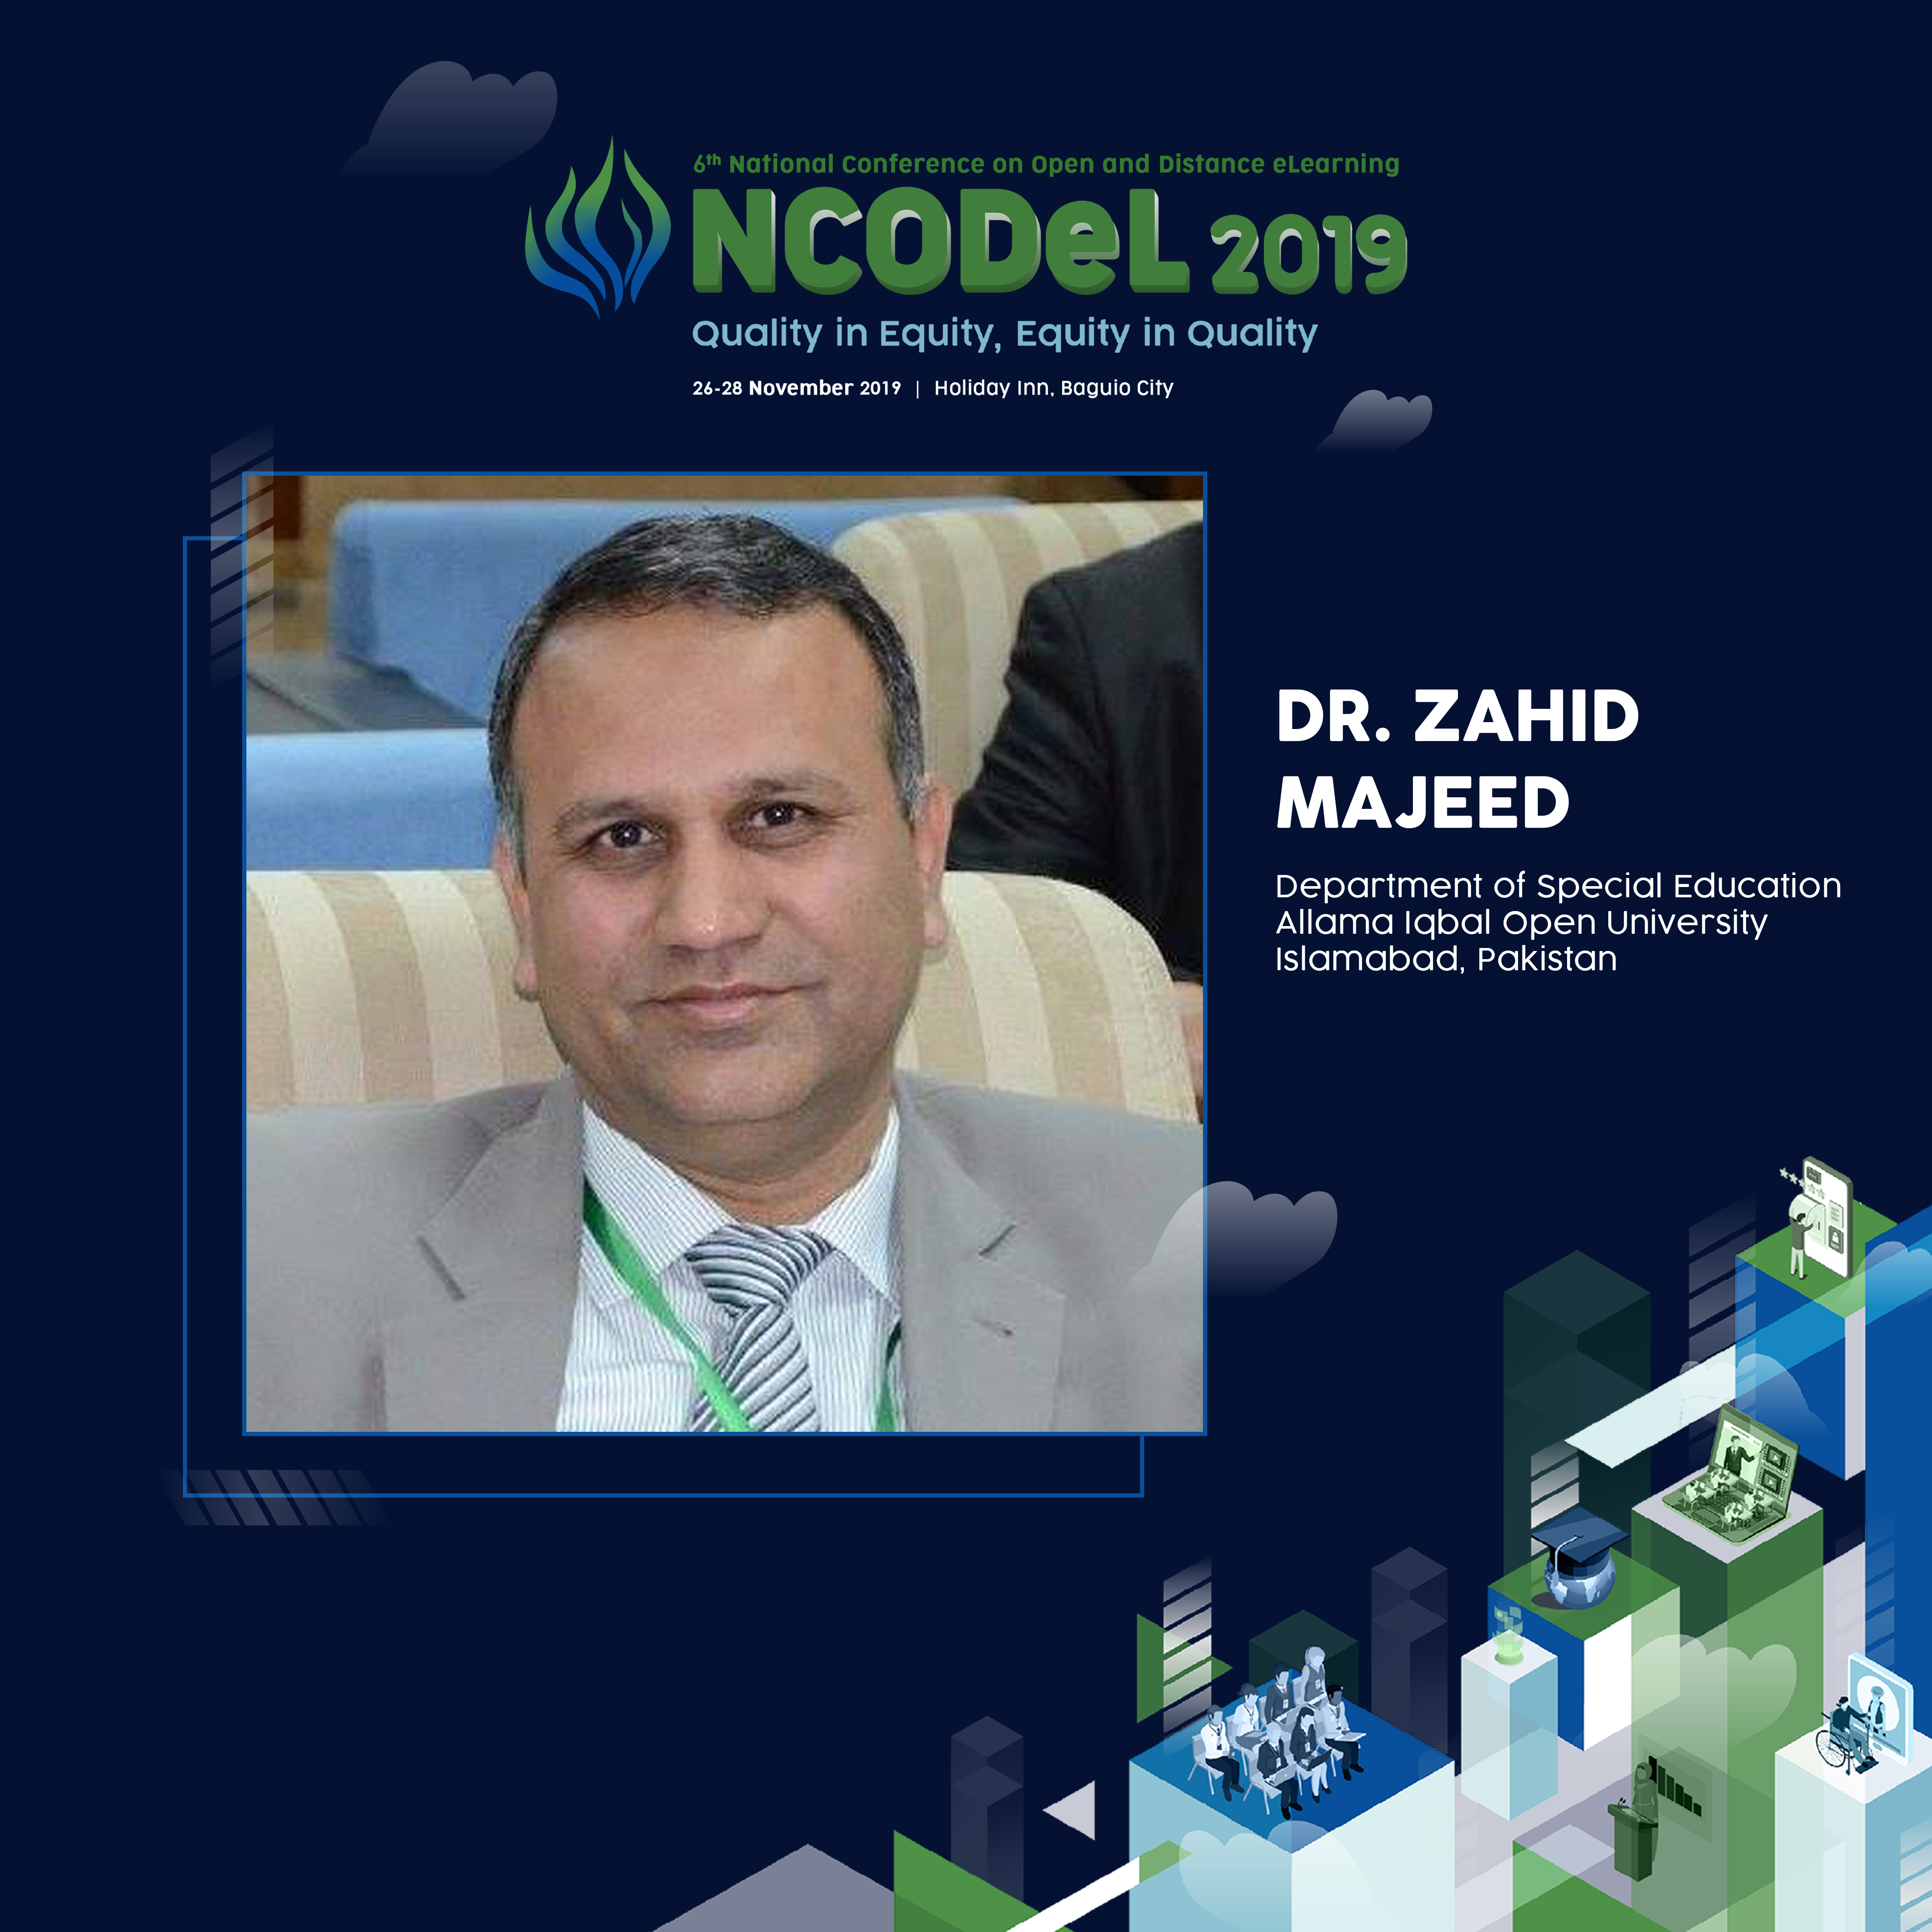 Dr. Zahid Majeed will be one of teh NCODeL 2019 speakers.